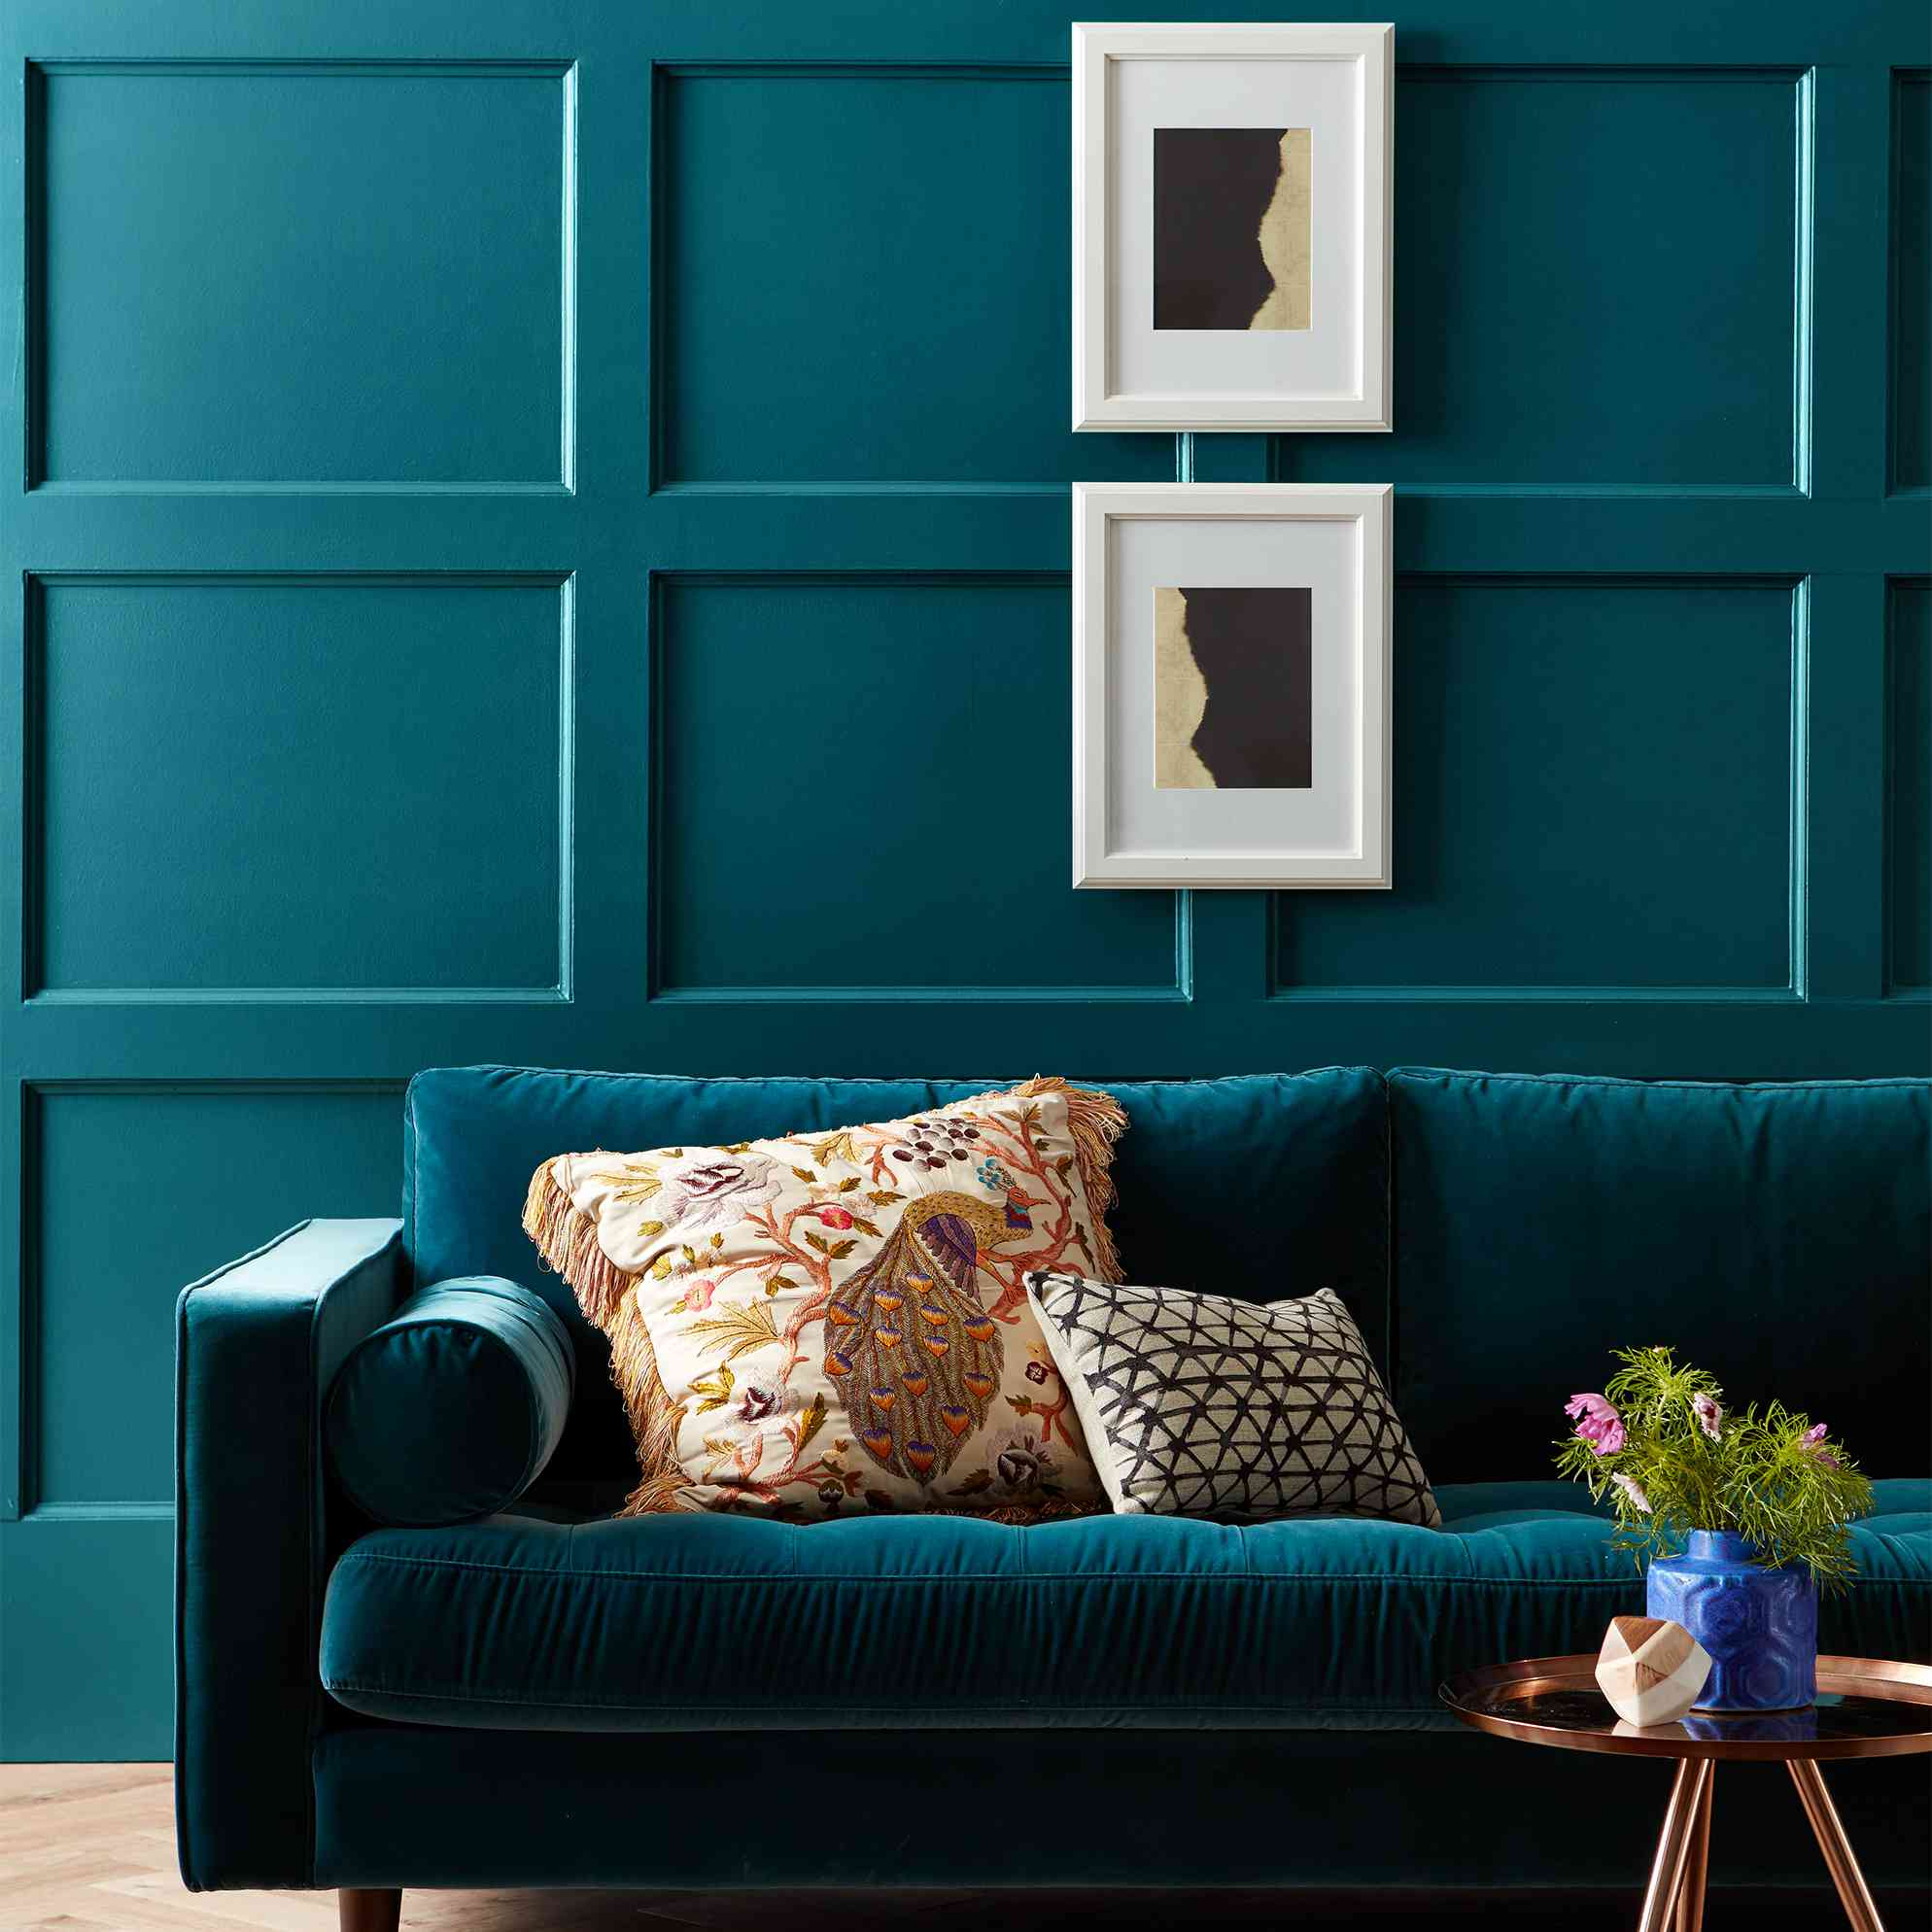 The 13 Best Teal Paint Colors To Add Drama To Any Room